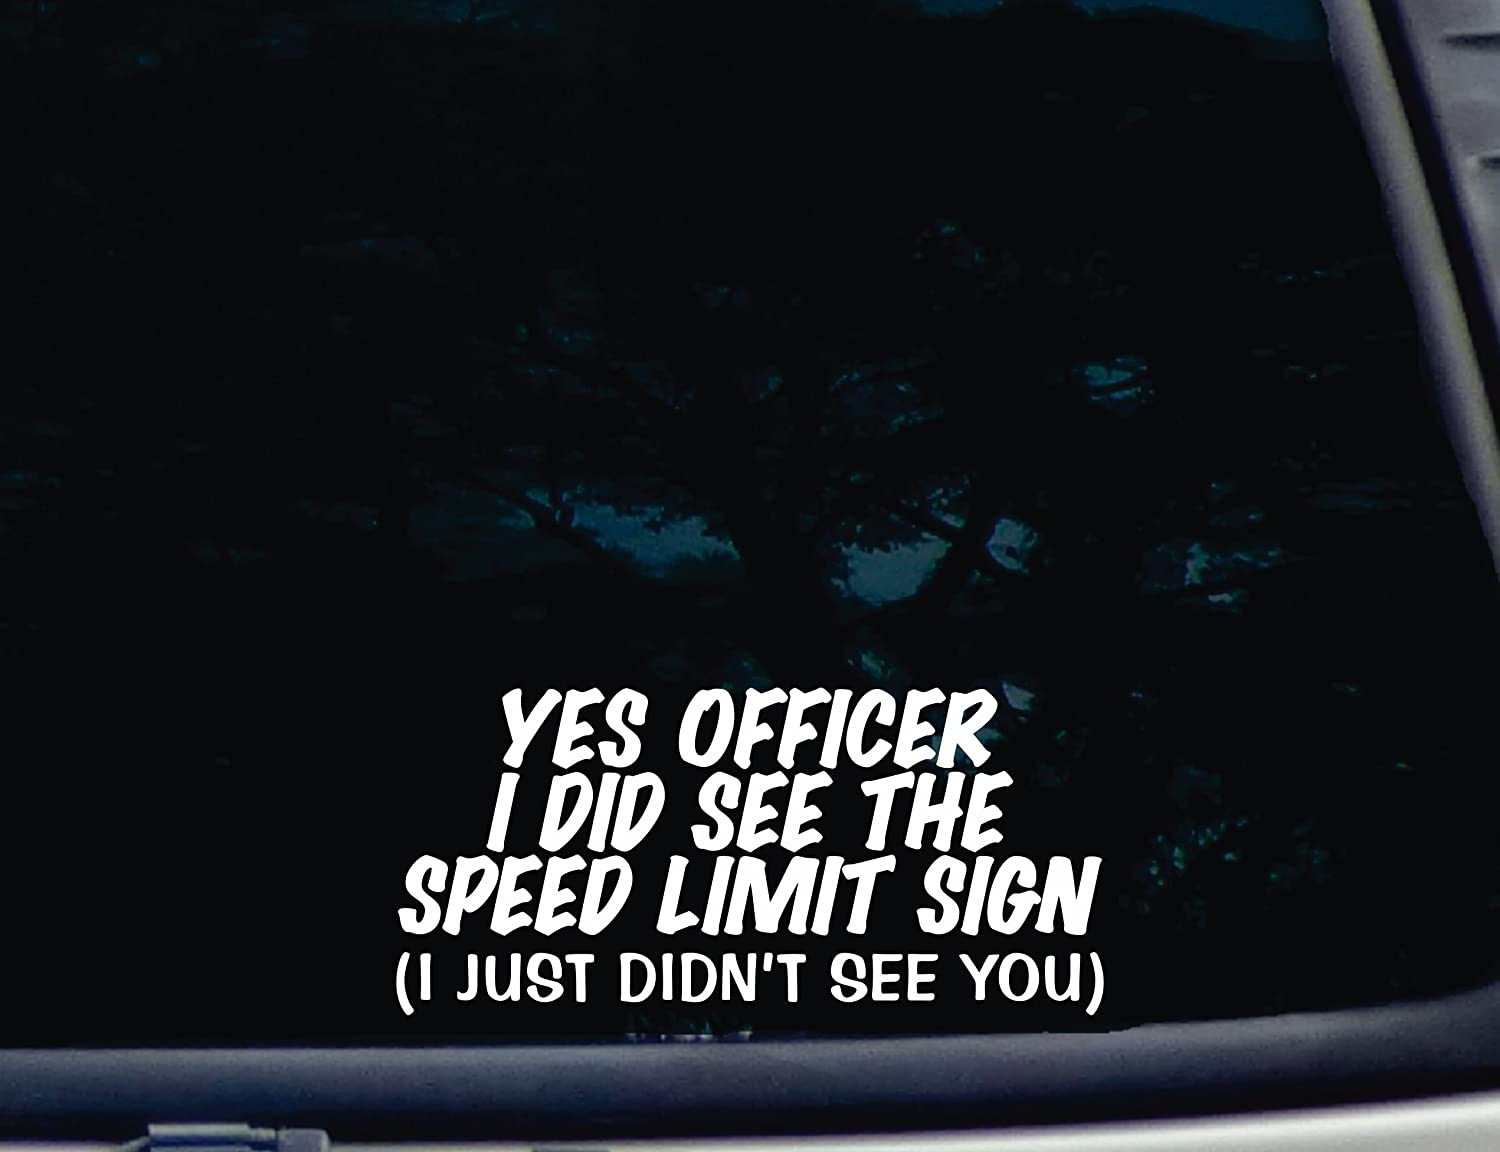 YES OFFICER I Did See the Speed Limit Sign (I just didn't see YOU) - 8' x 3 3/4' die cut vinyl decal for windows, cars, trucks, tool boxes, laptops, MacBook - virtually any hard, smooth surface Barefoot Graphix bf-a-1482